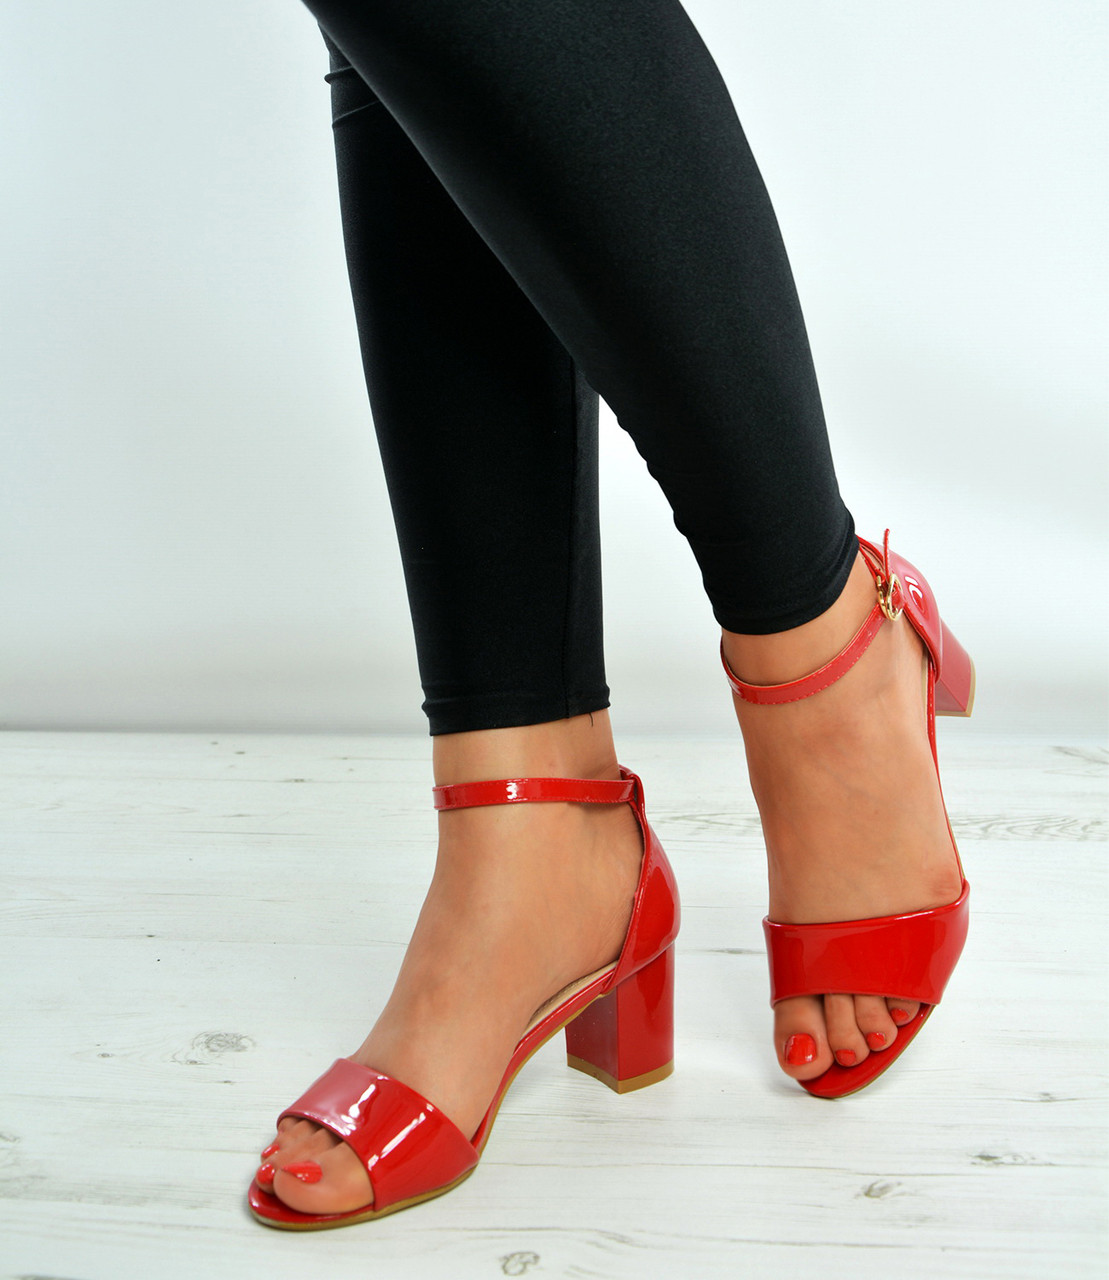 Red Ankle Strap Mid Block Heel Sandals Shoes Size Uk 3-8